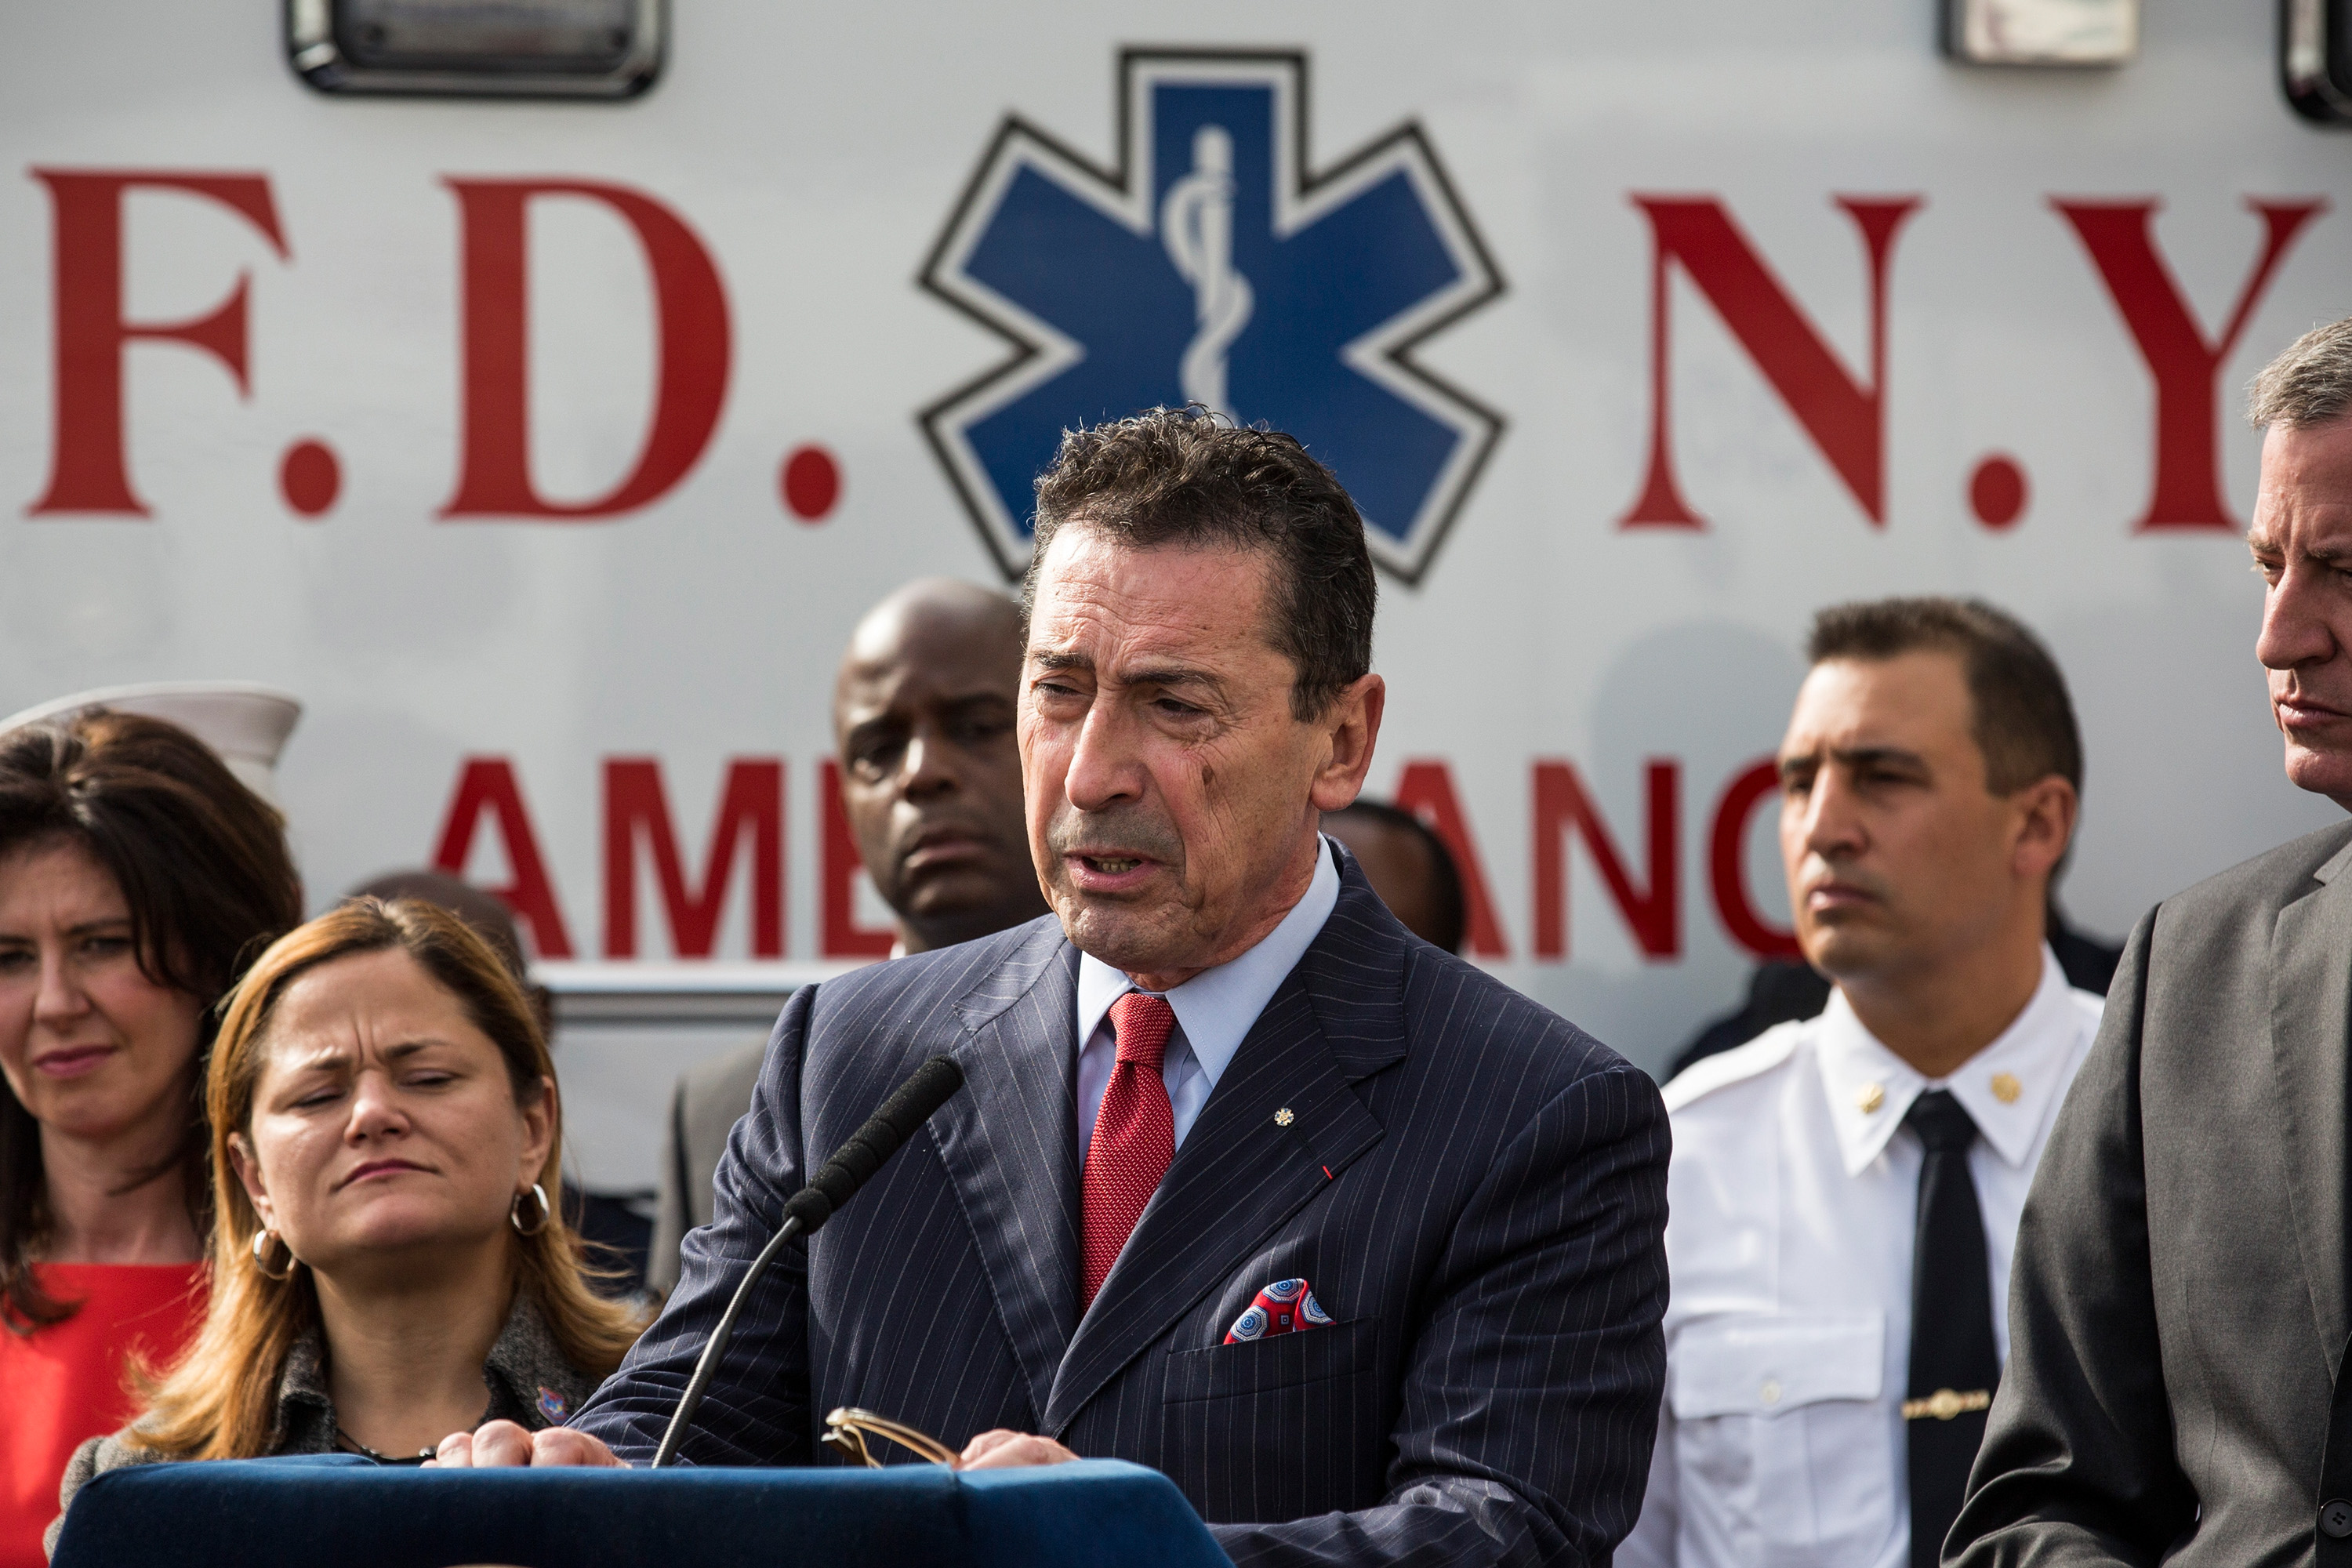 FDNY Commissioner Daniel Nigro (Photo: Andrew Burton/Getty Images).